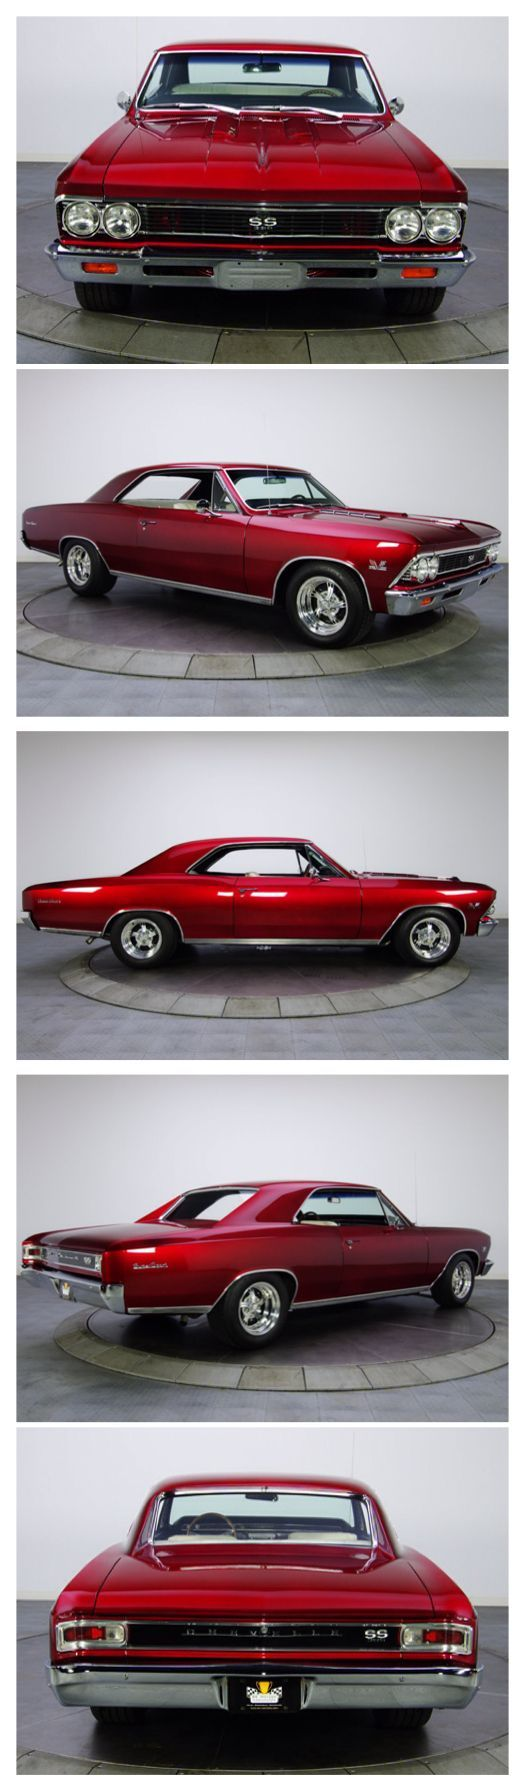 1966 Chevy Chevelle SS...Brought to you by House of Insurance in #Eugene, #Oregon. Save on #insurance in Eugene: